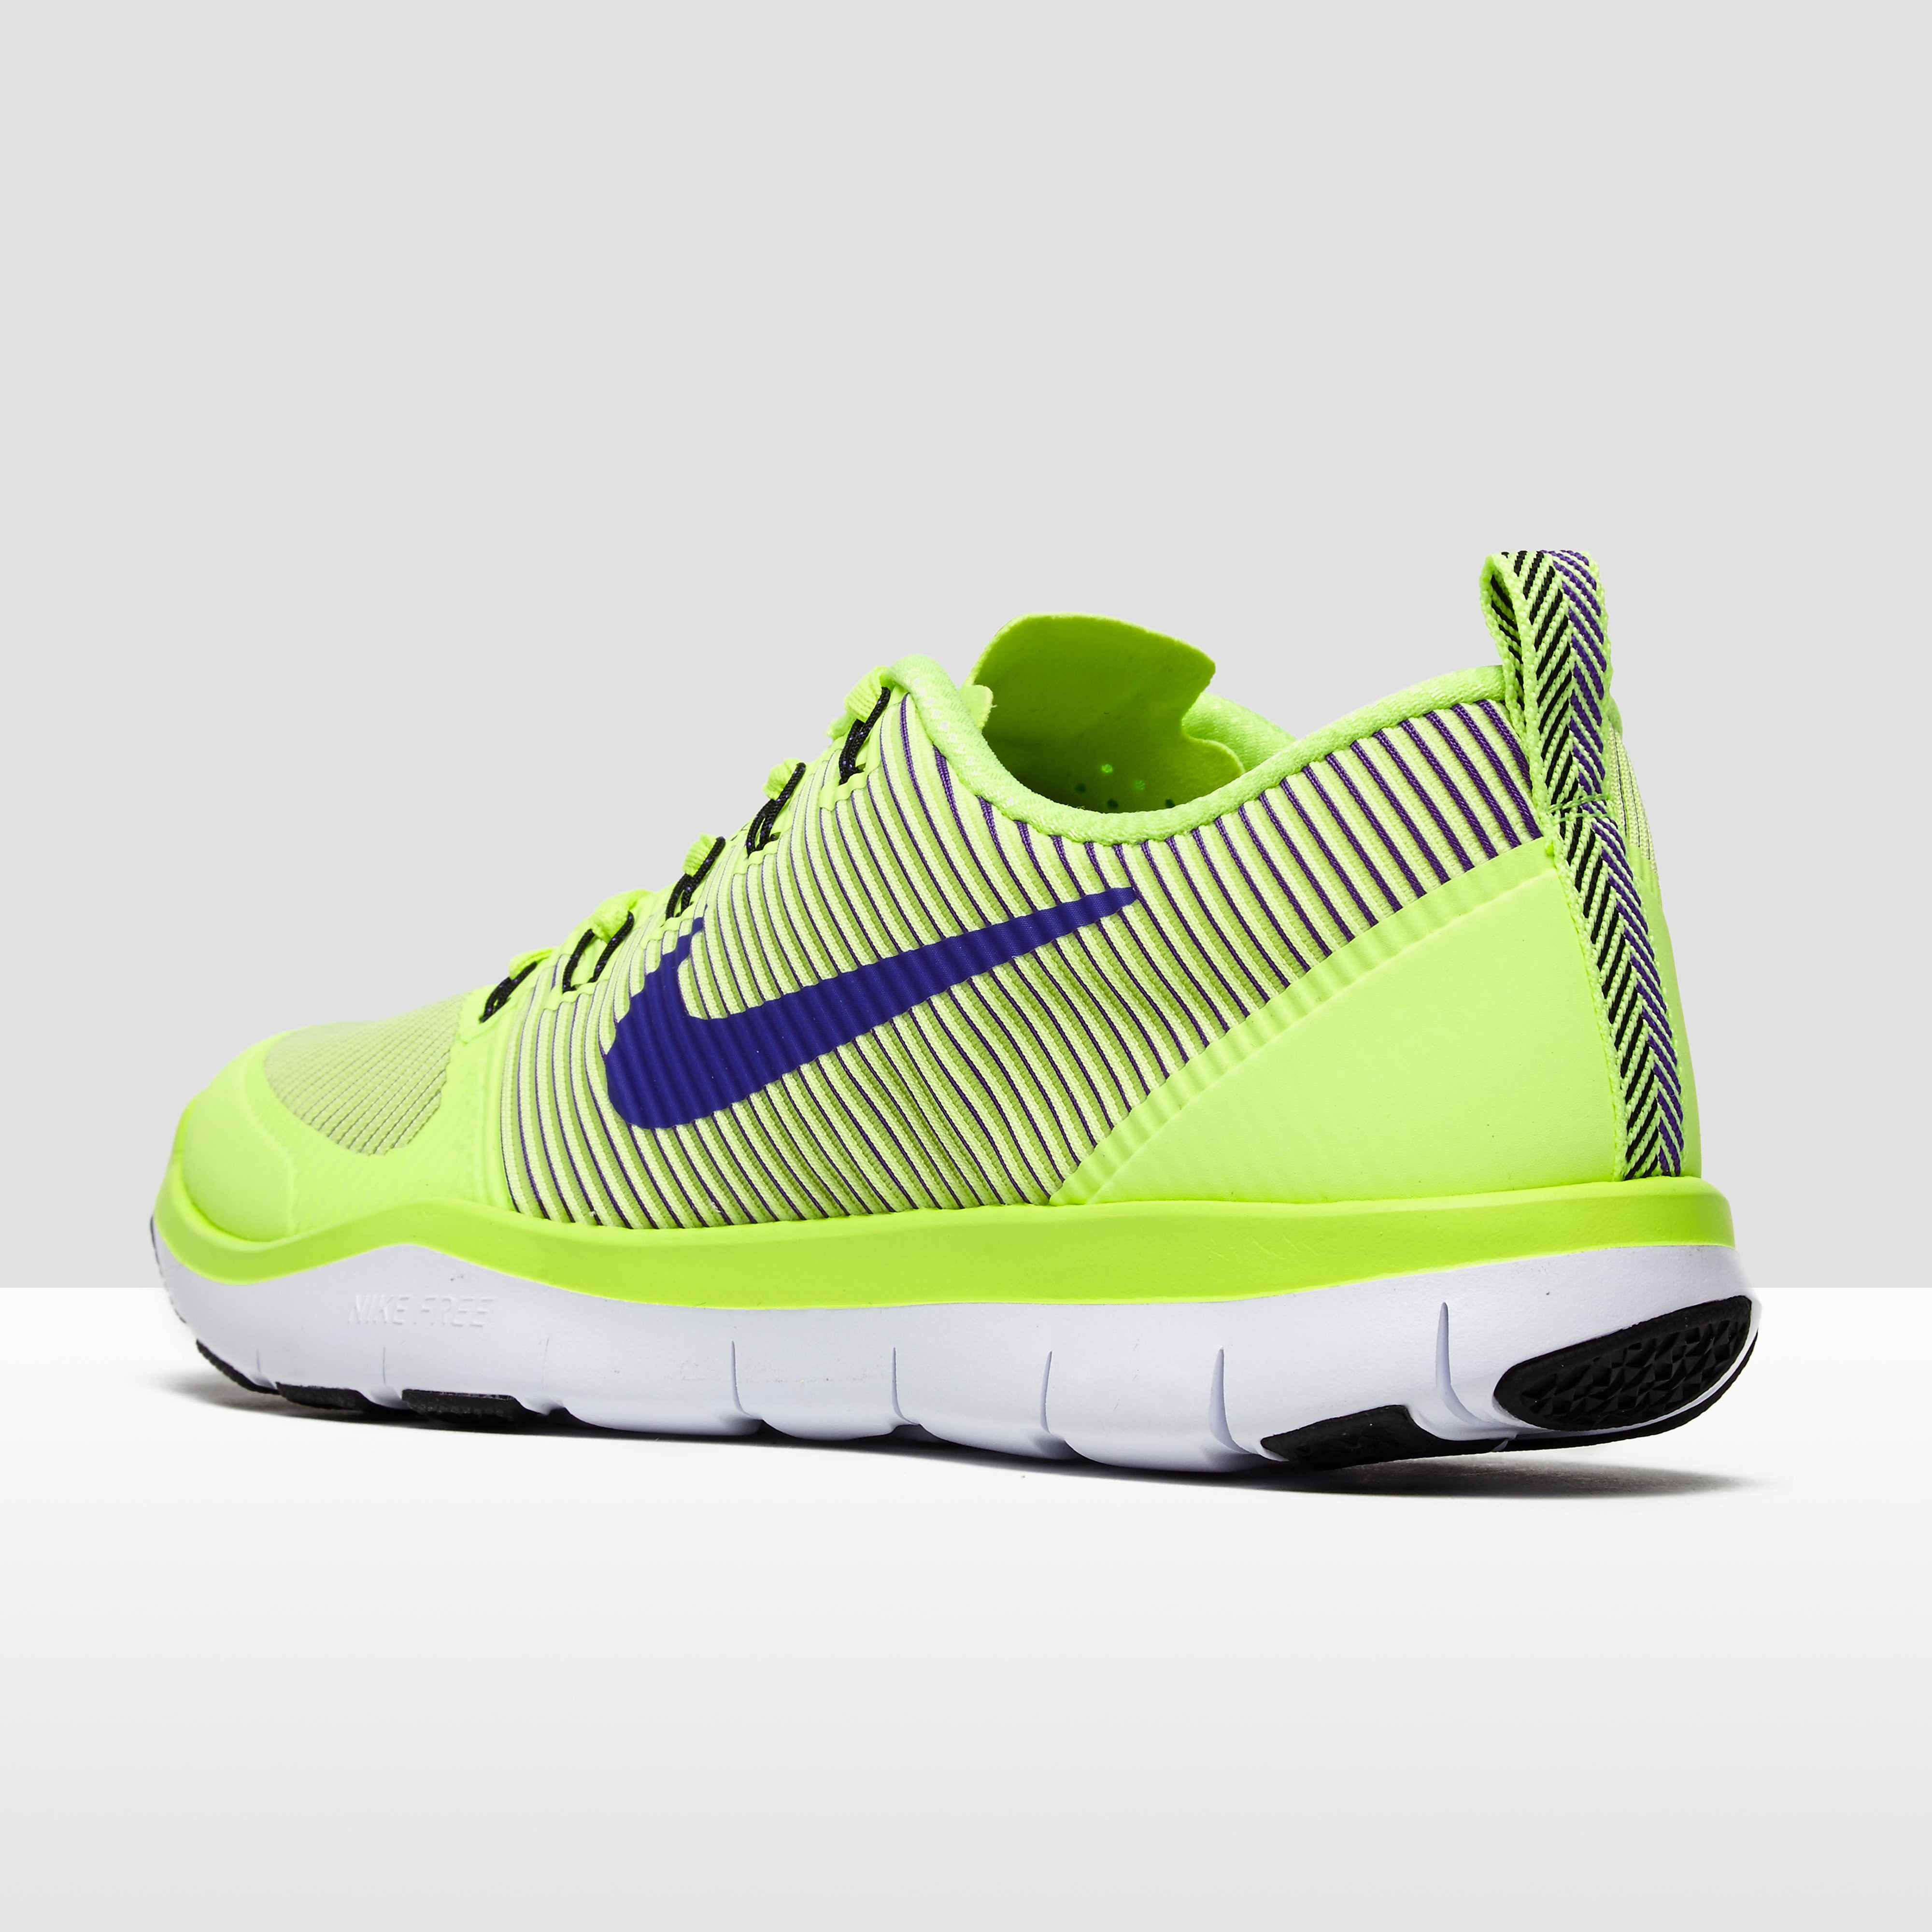 Nike Free Train Versatility Men's Training Shoes